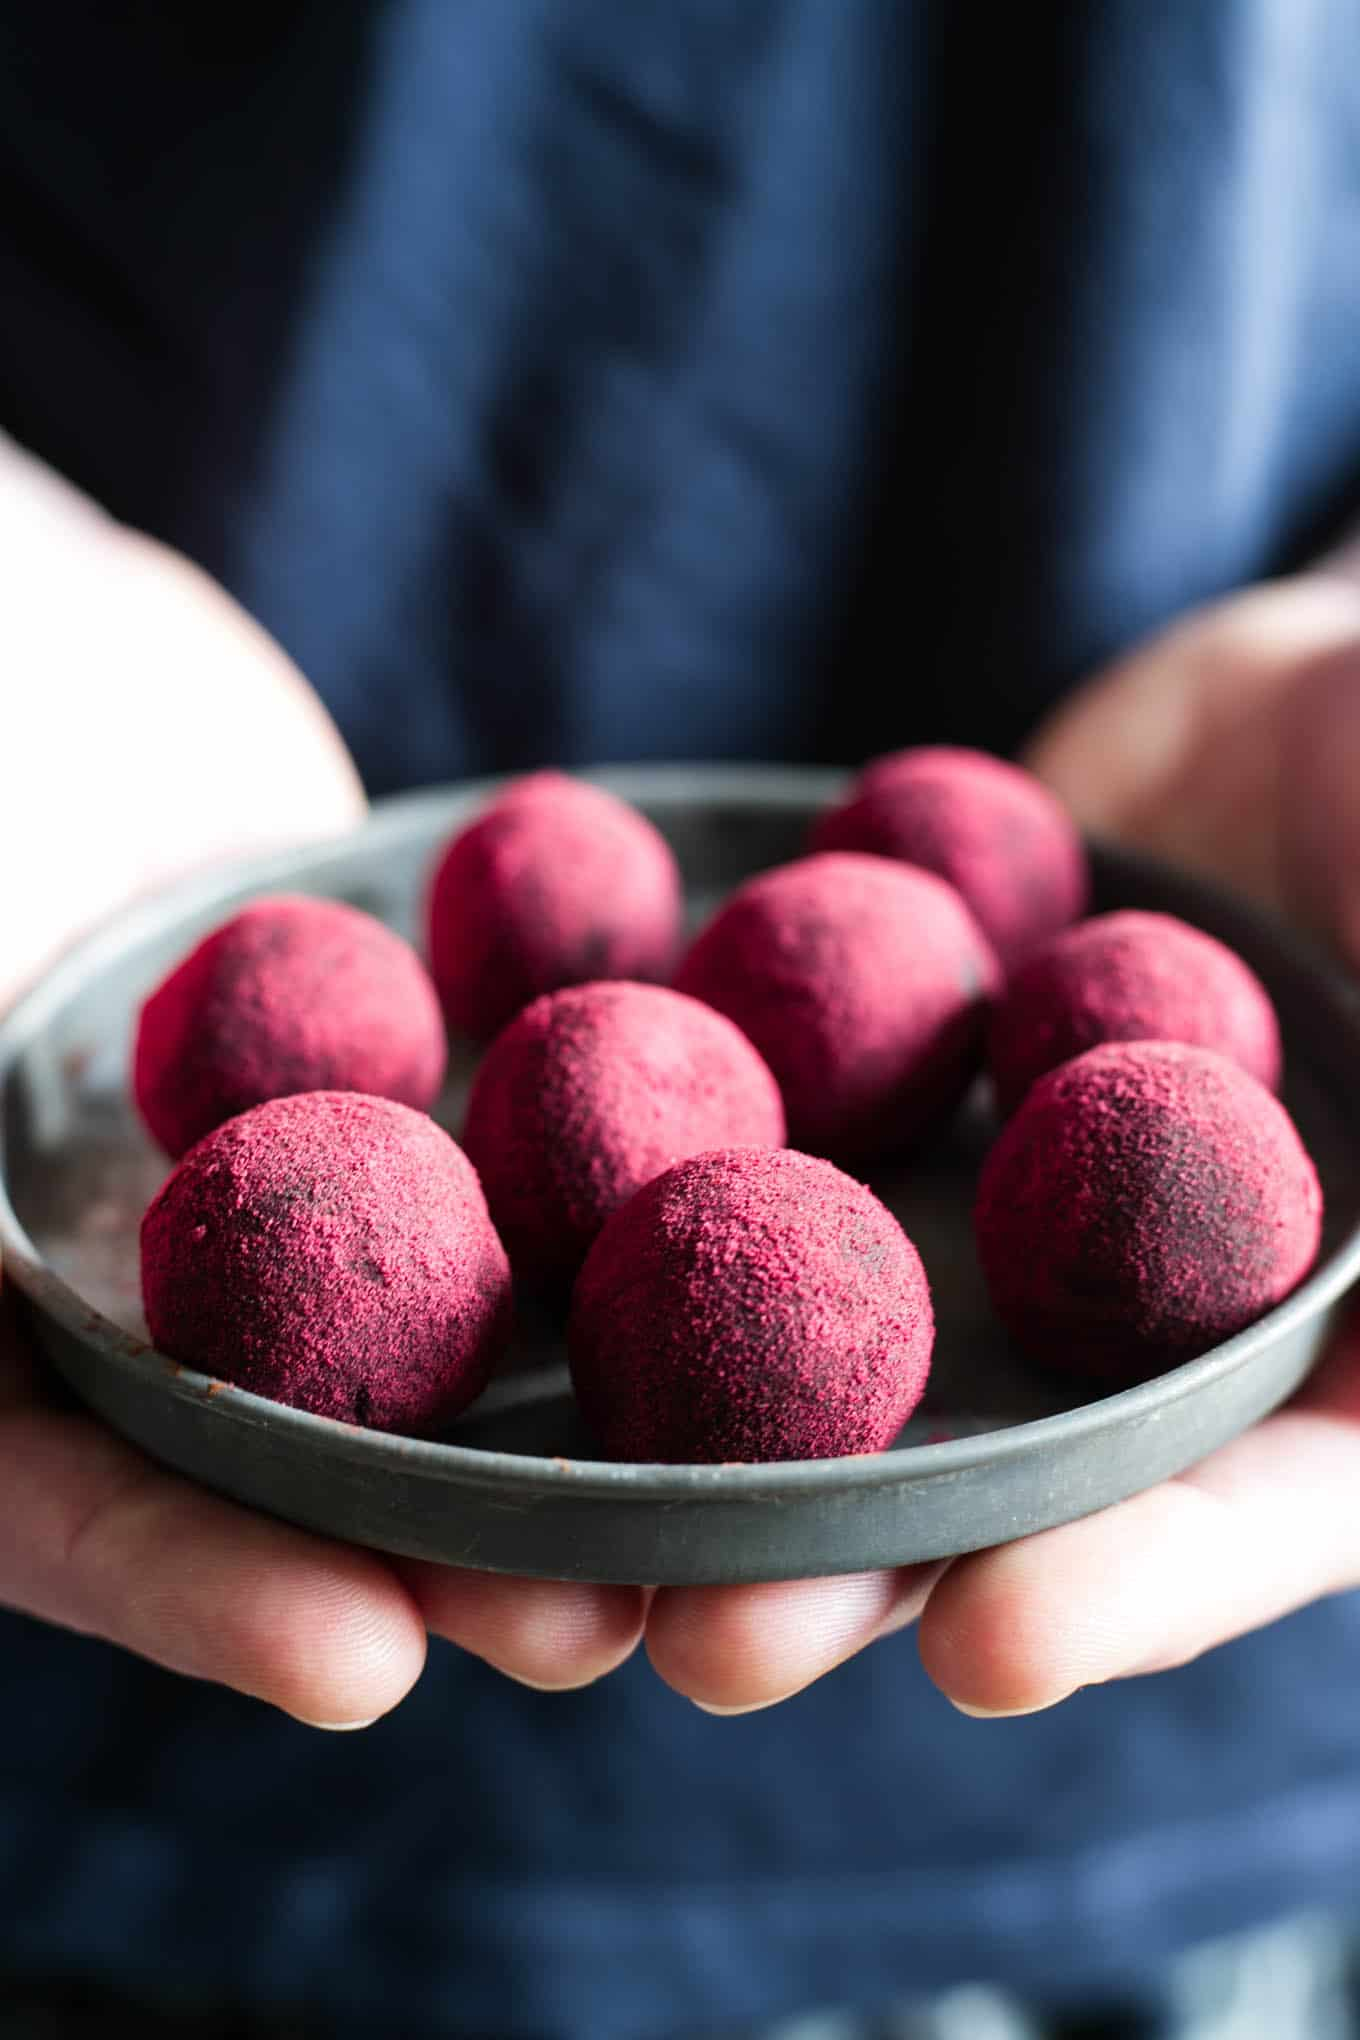 Delicious and easy recipe for chocolate and peanut butter truffles. They are #refinedsugarfree and #vegan! Made with only natural ingredients! #dairyfree | via @annabanana.co